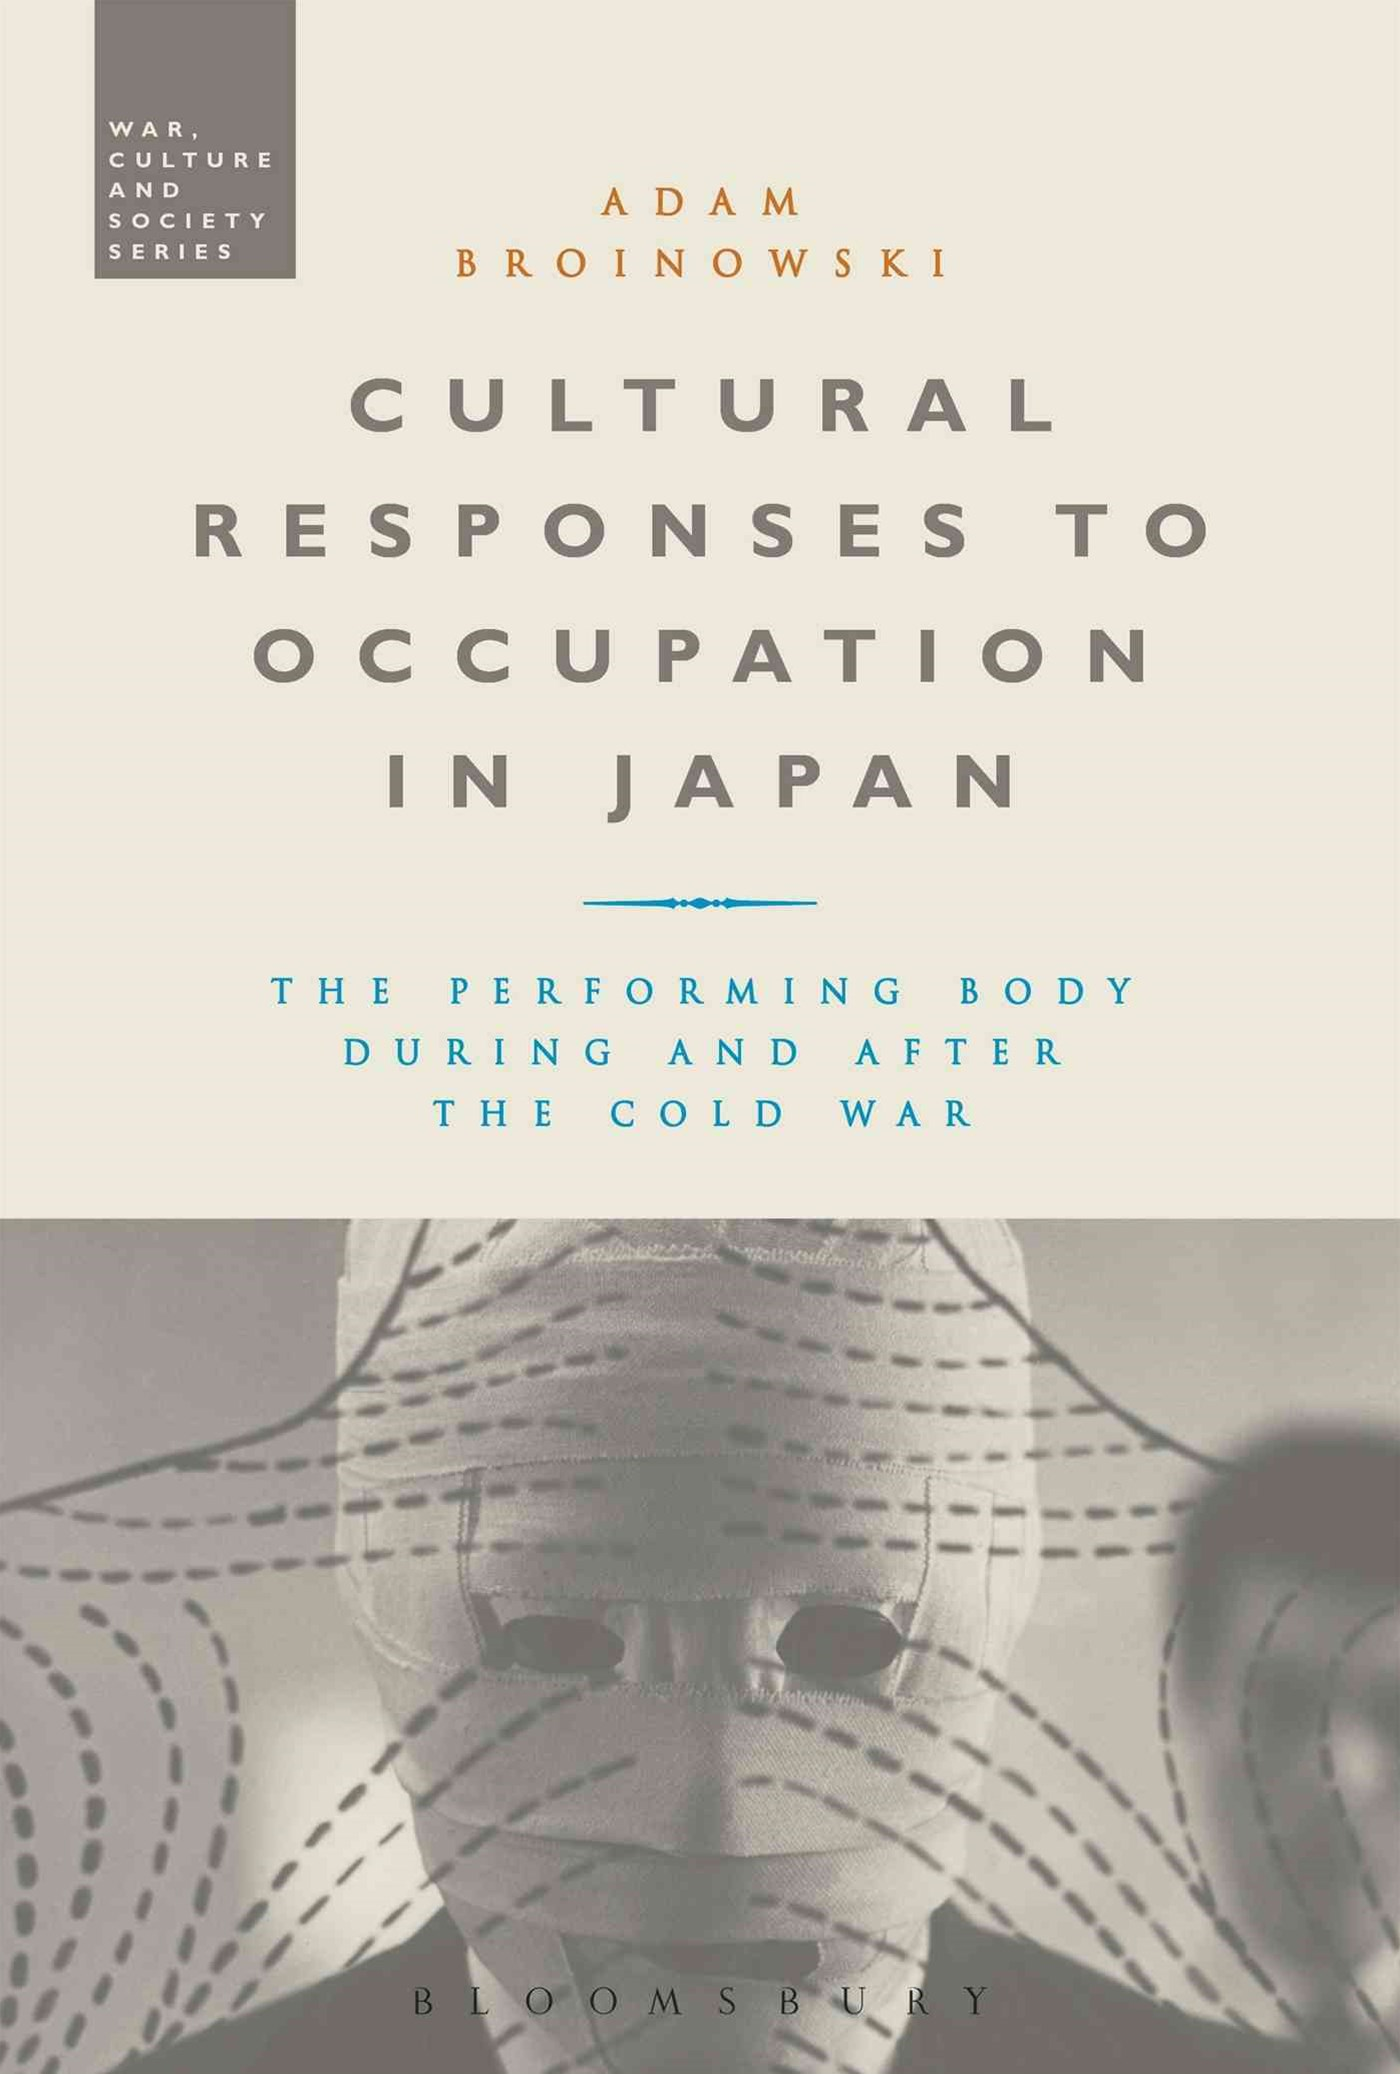 Cultural Responses to Occupation in Japan